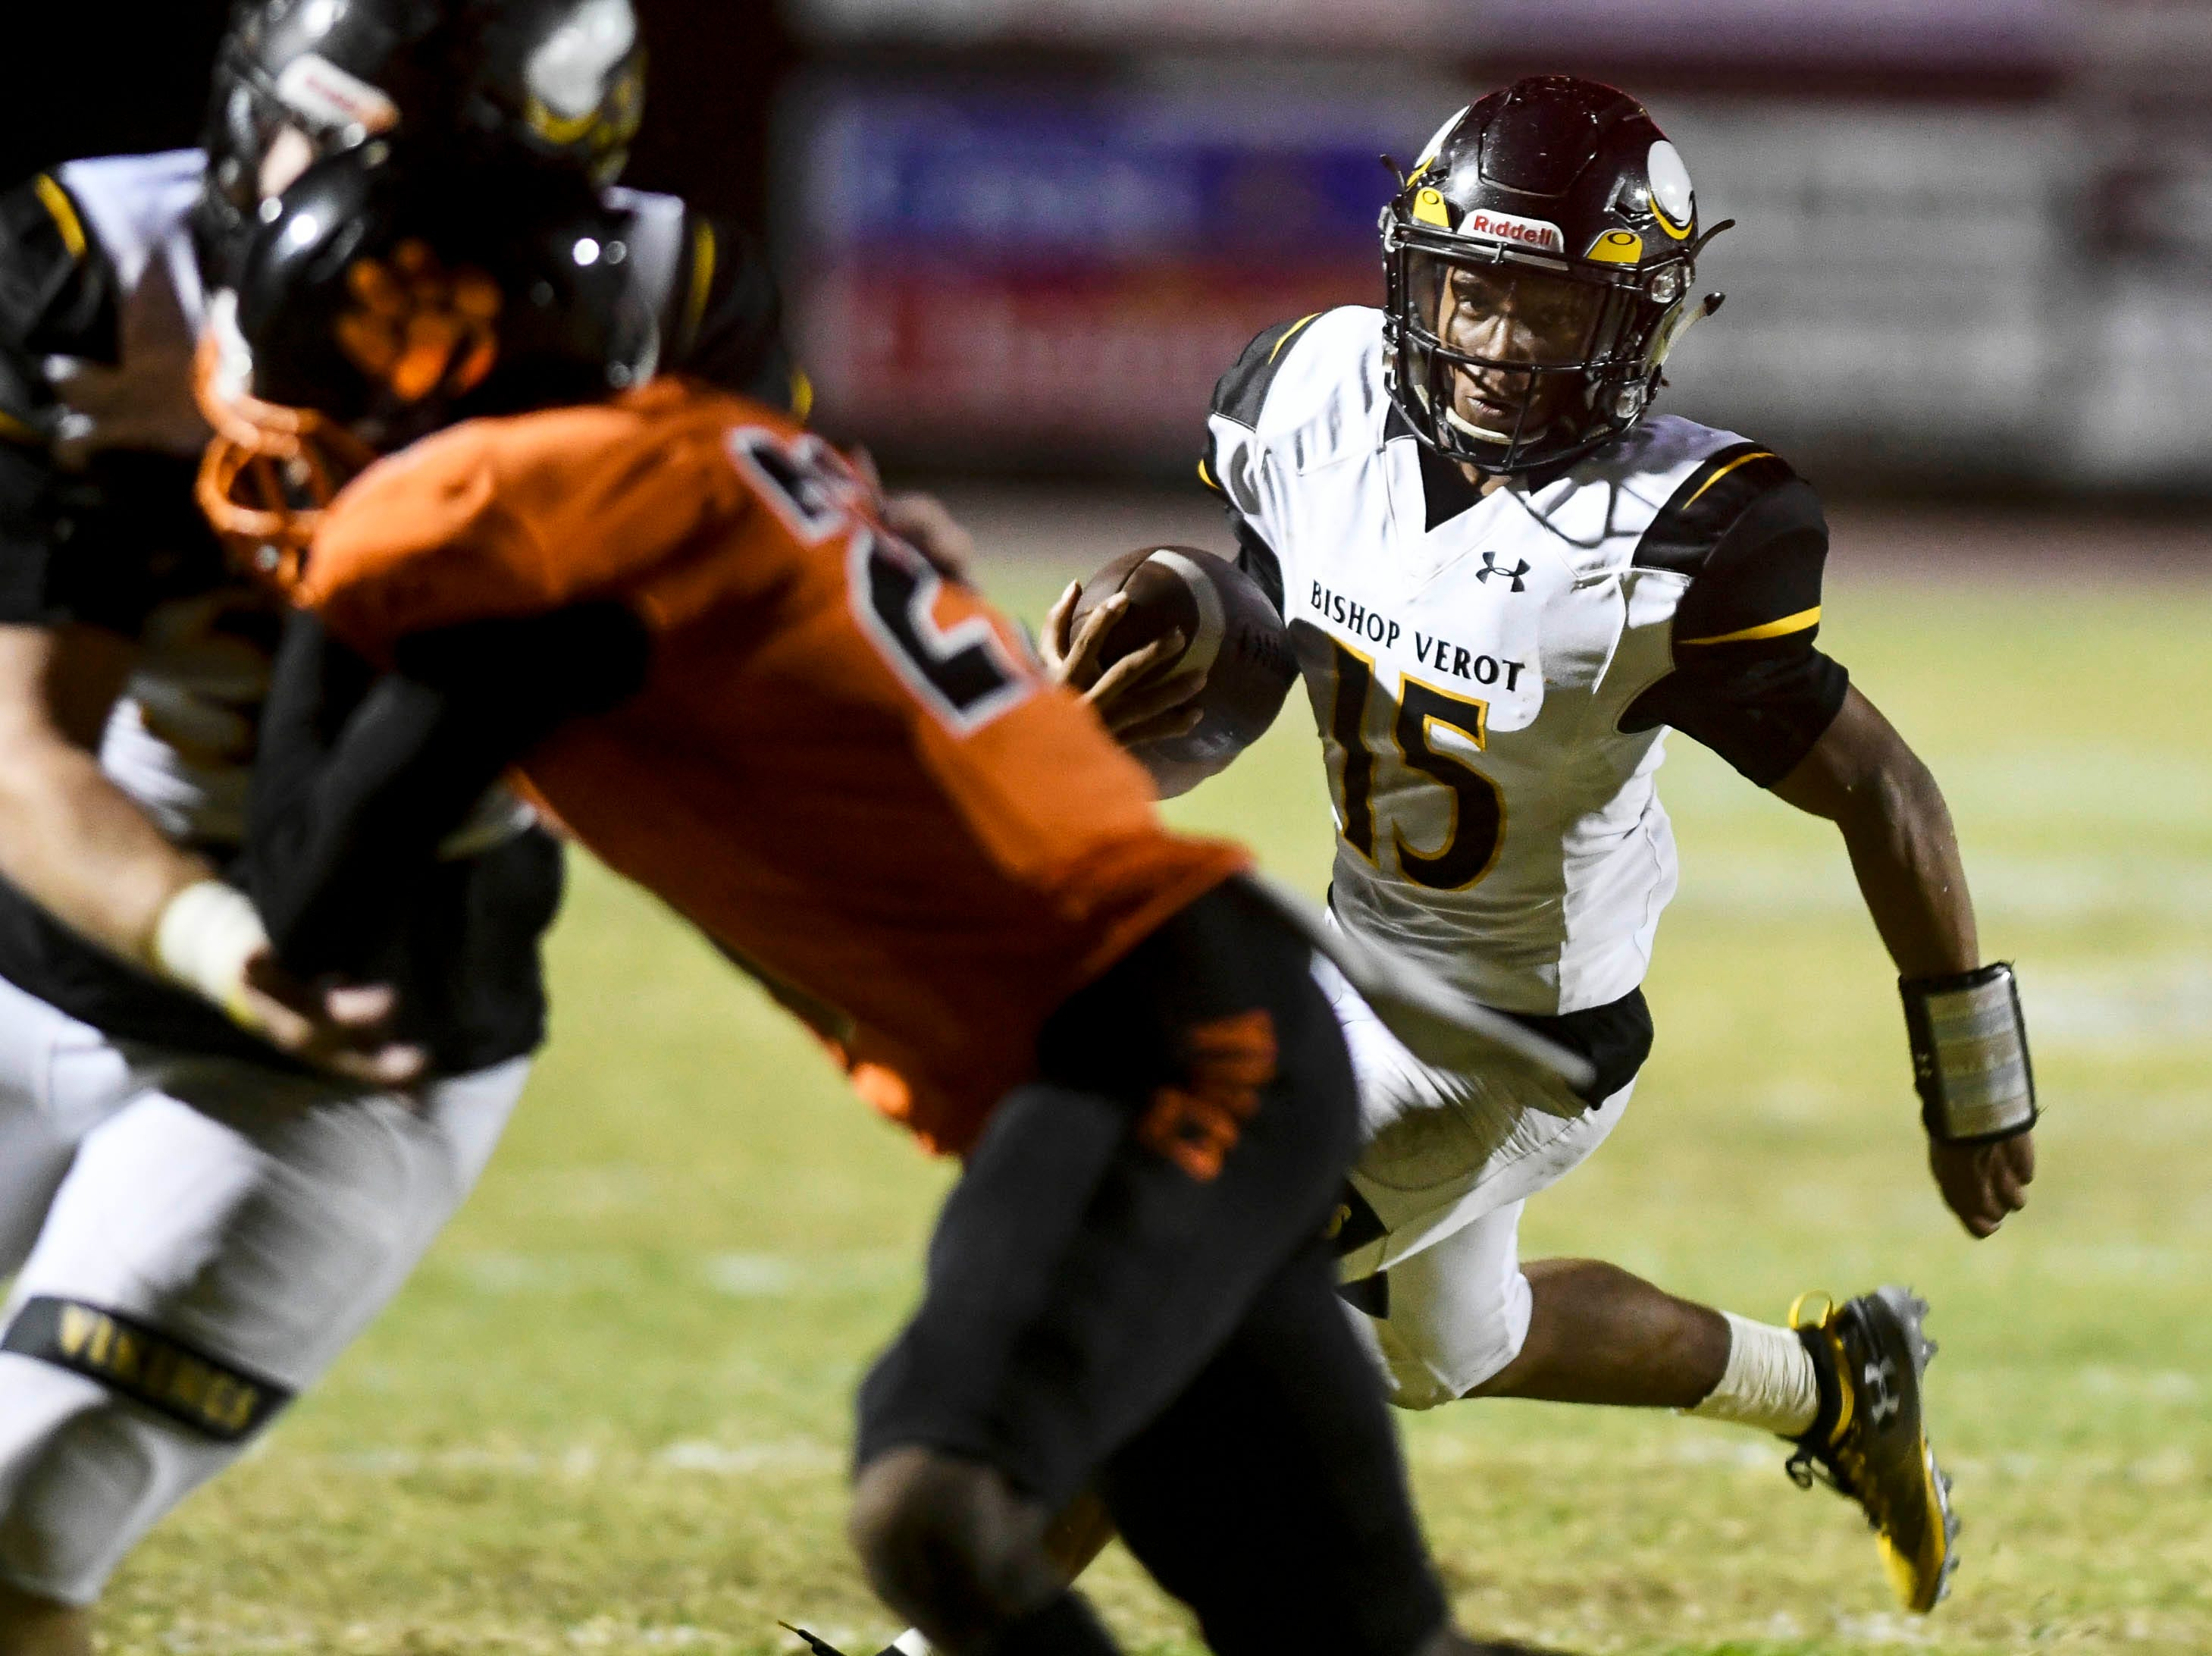 Tequon Chatman of Bishop Verot looks for running room during Friday's game in Cocoa.